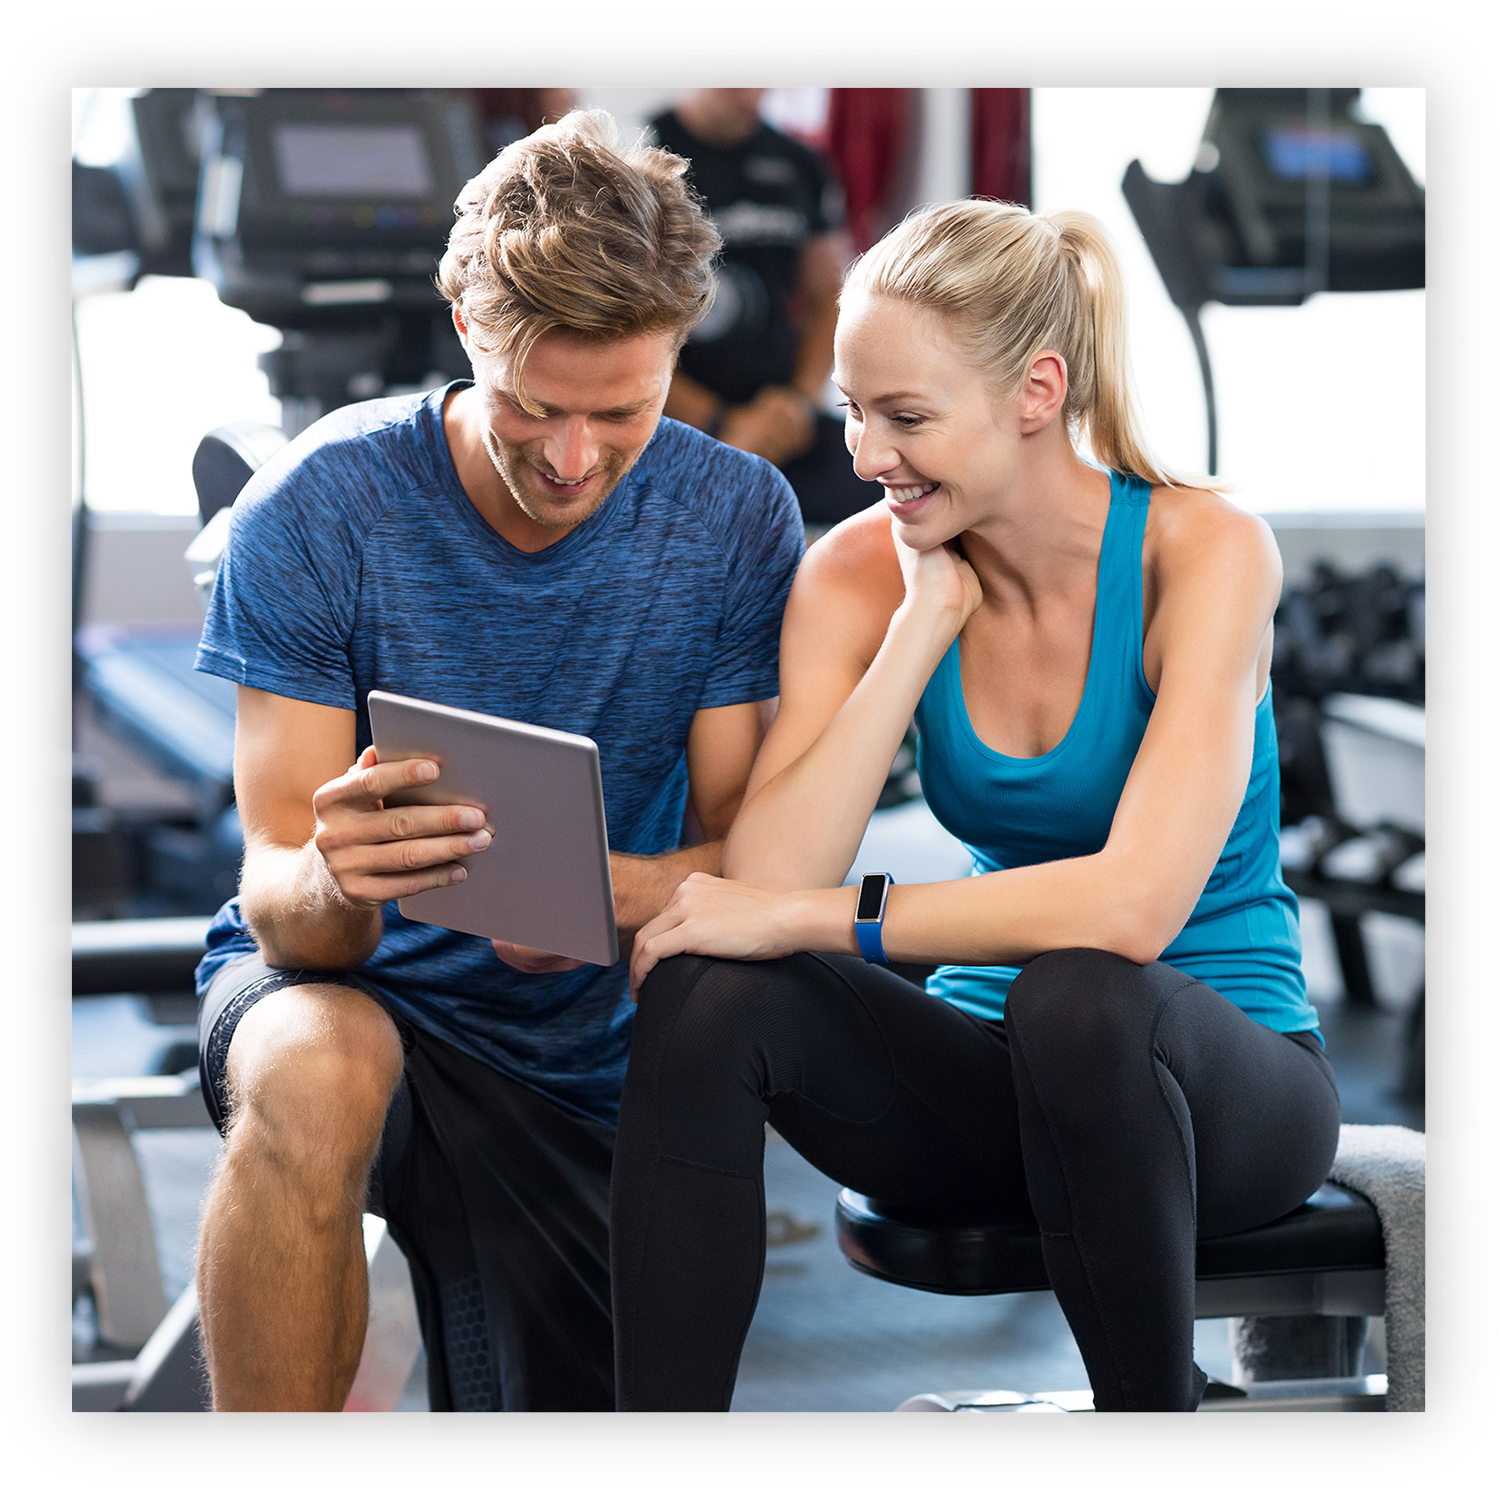 Fitness Professionals - See how fitness professionals are leveraging range of motion assessments and flexibility programs to take their practices to the next level.